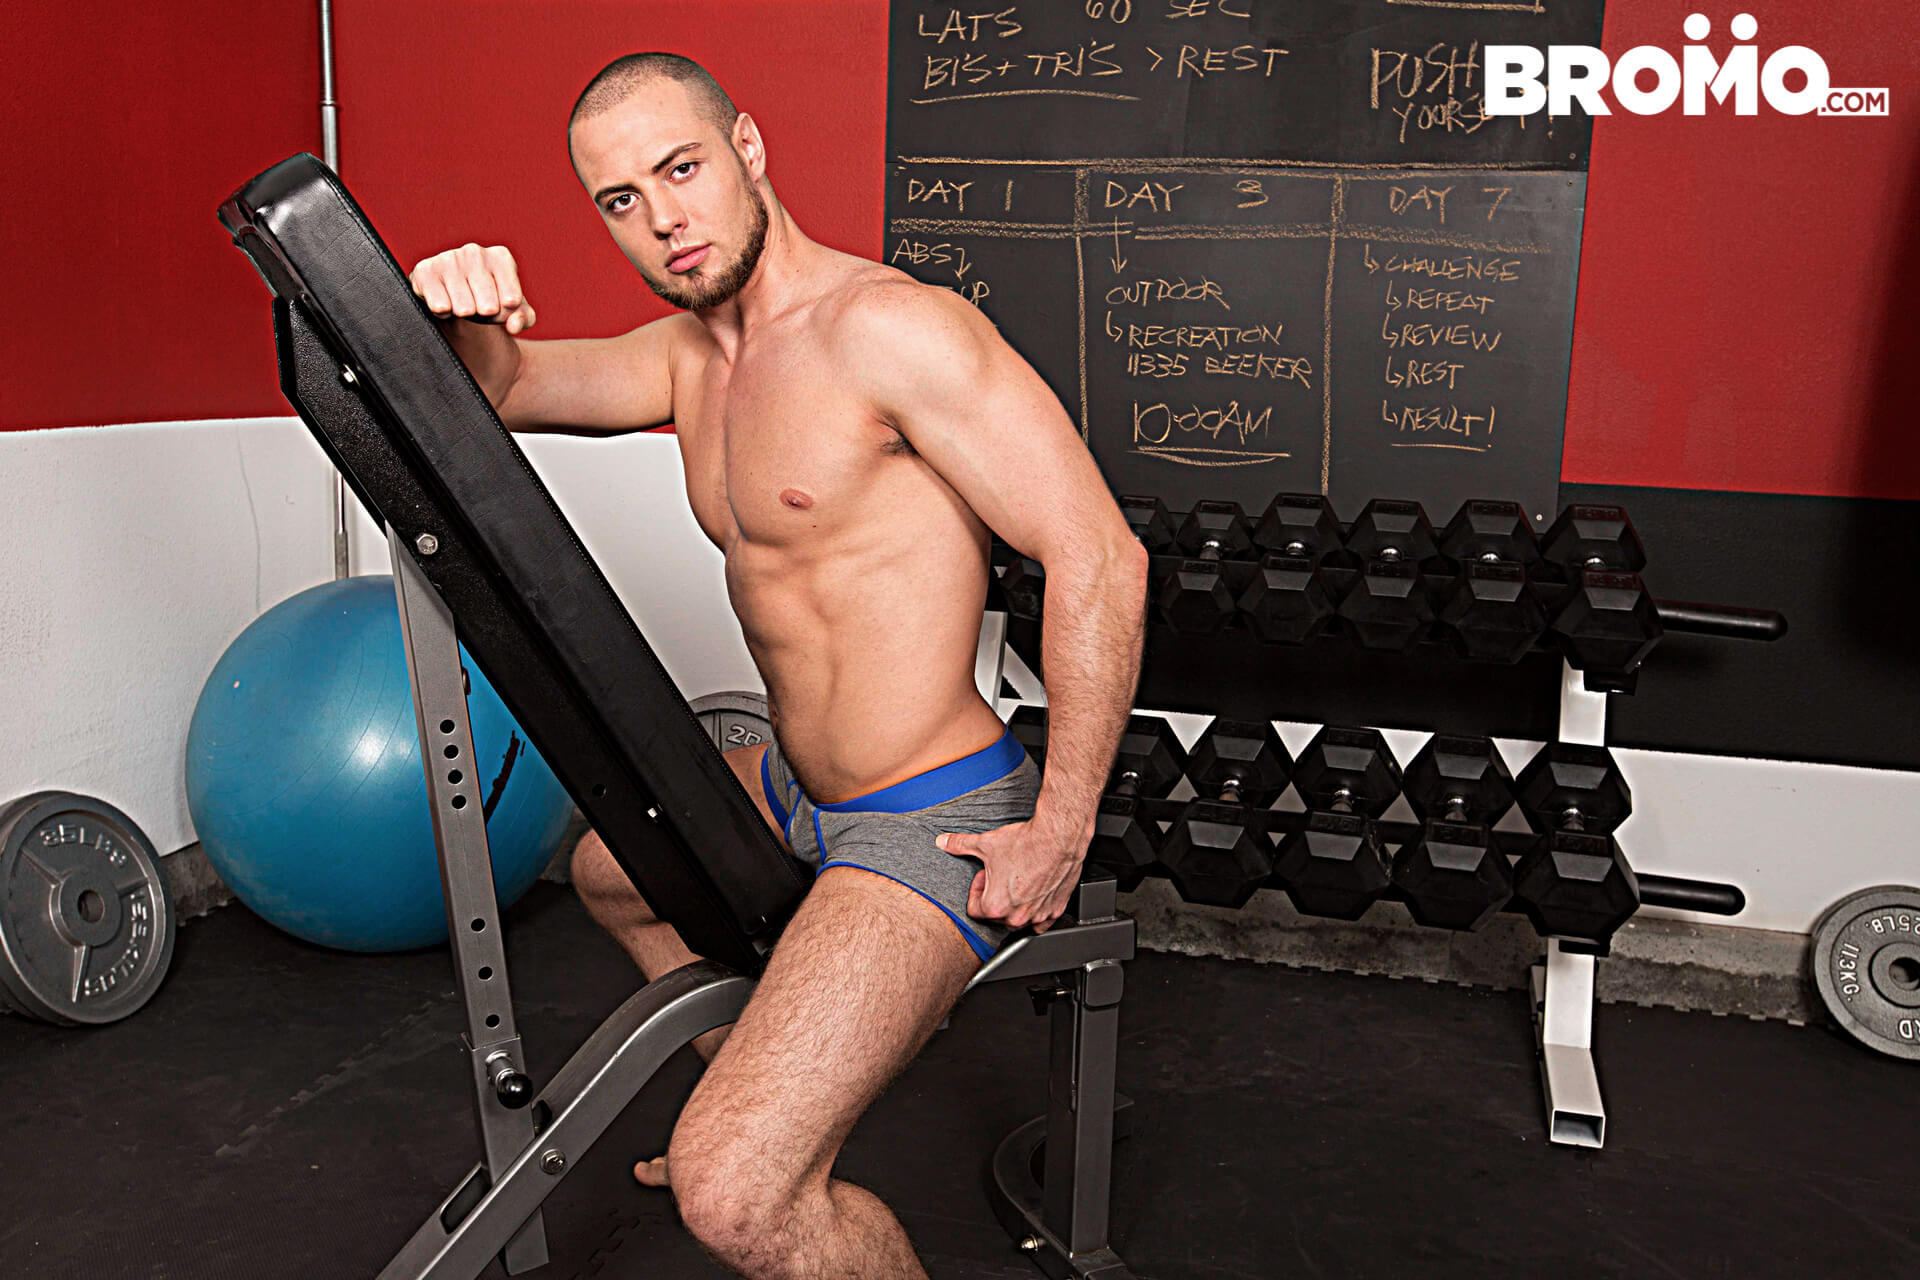 bromo train me part 3 shawn reeve brendan phillips gay porn blog image 5